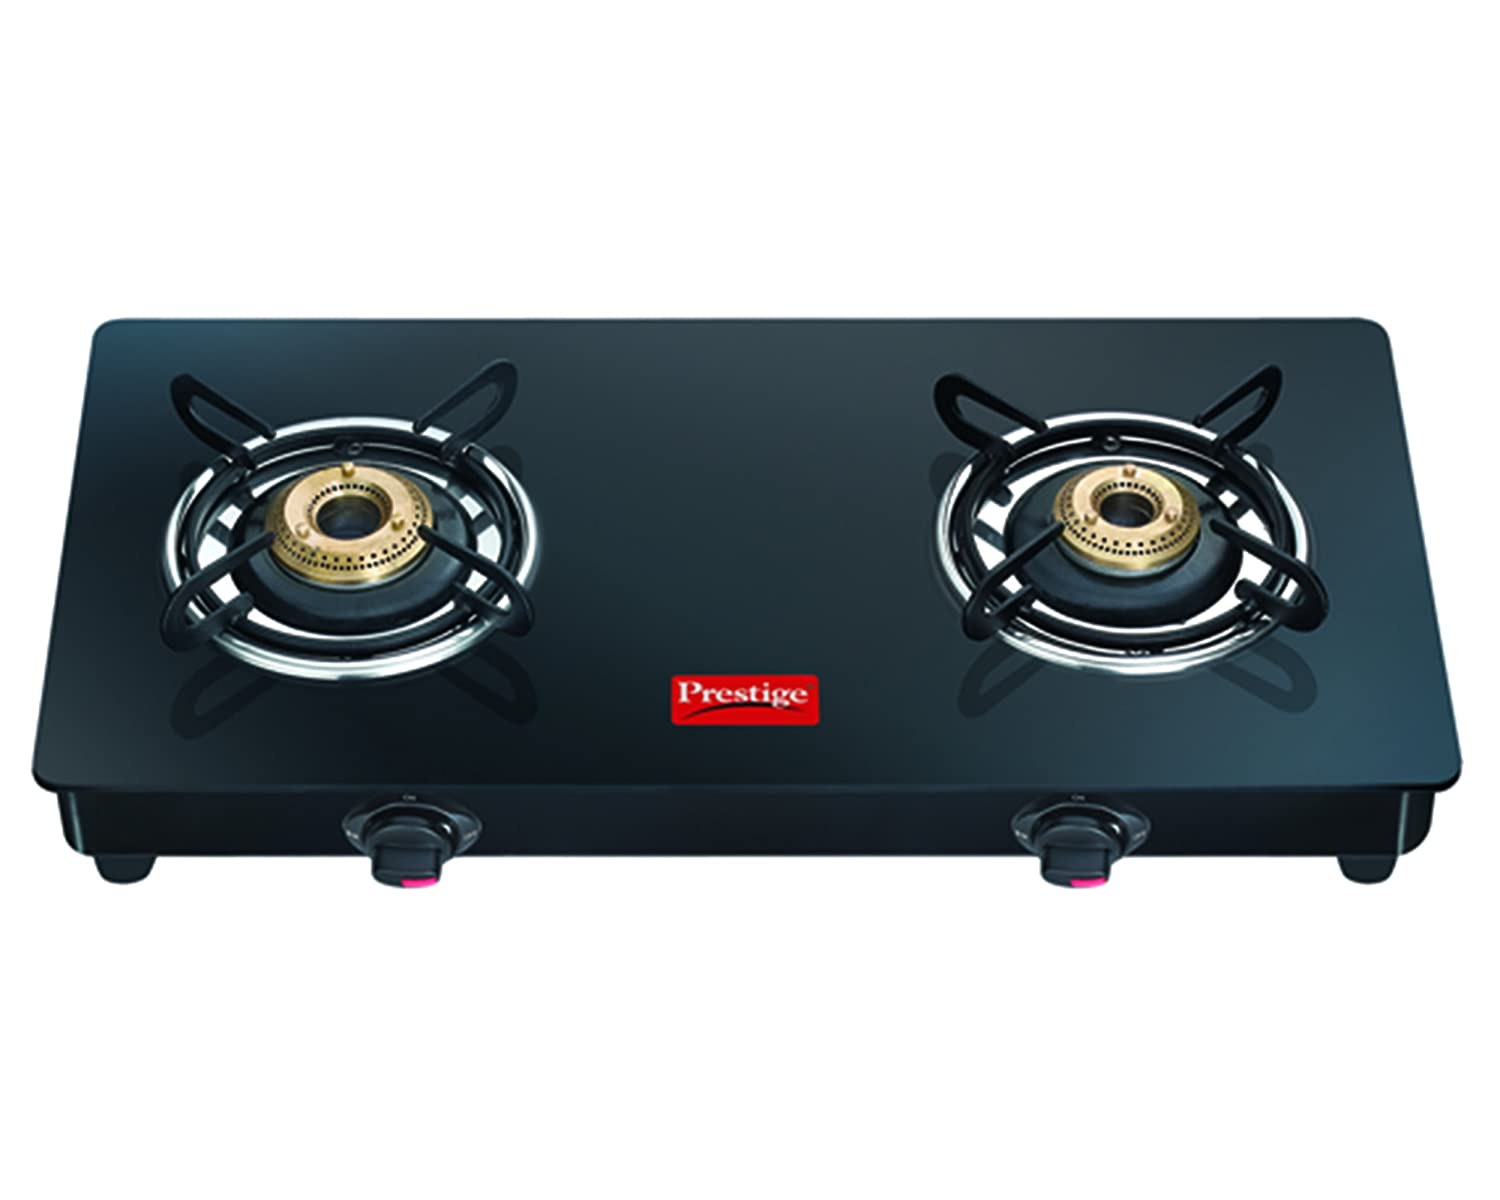 Buy Prestige Marvel Glass 2 Burner Gas Stove, Black Online at Low ...